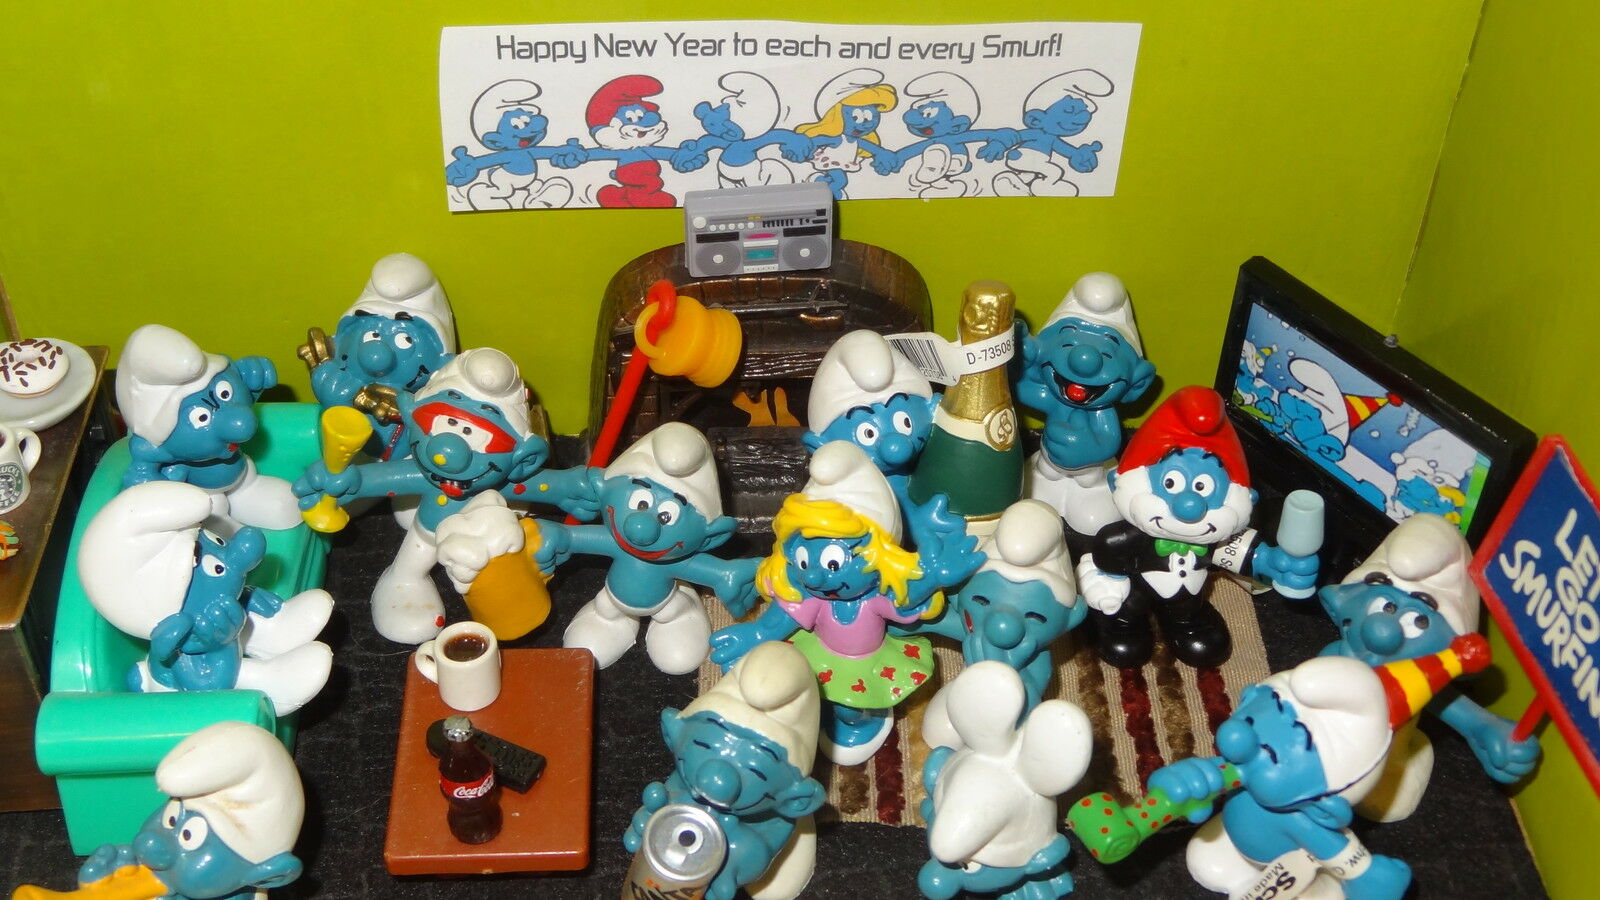 Smurf Collector s Center